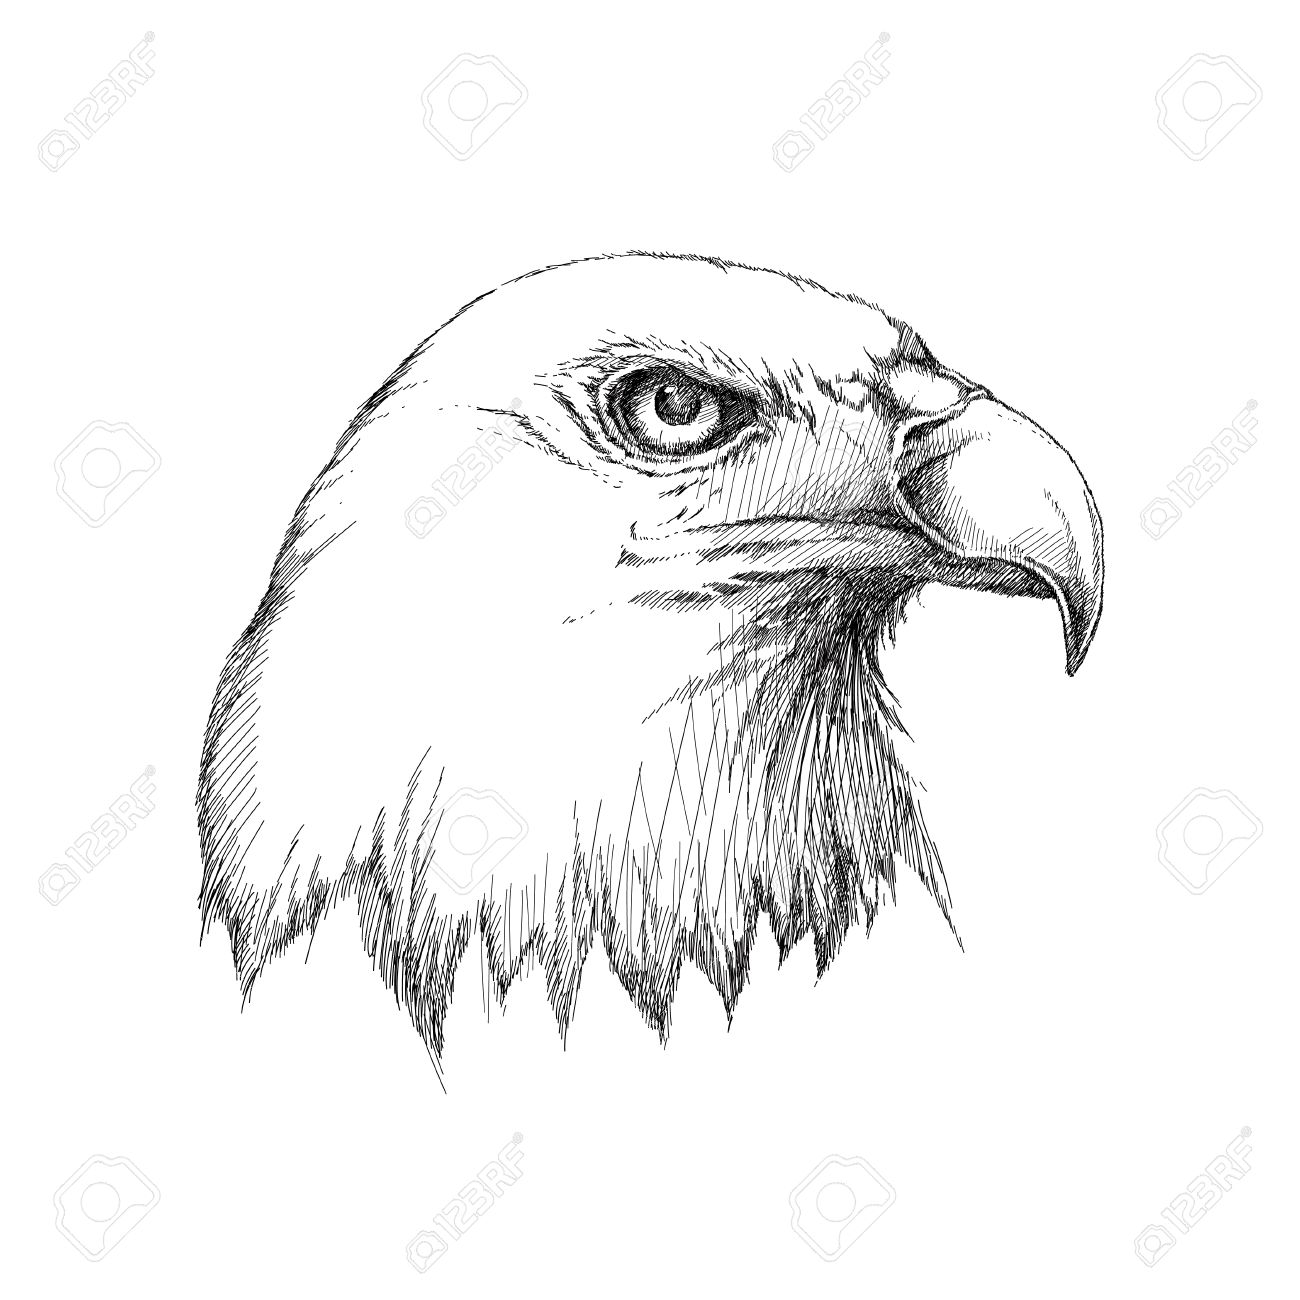 sketch of bald eagle head profile in black isolated on white